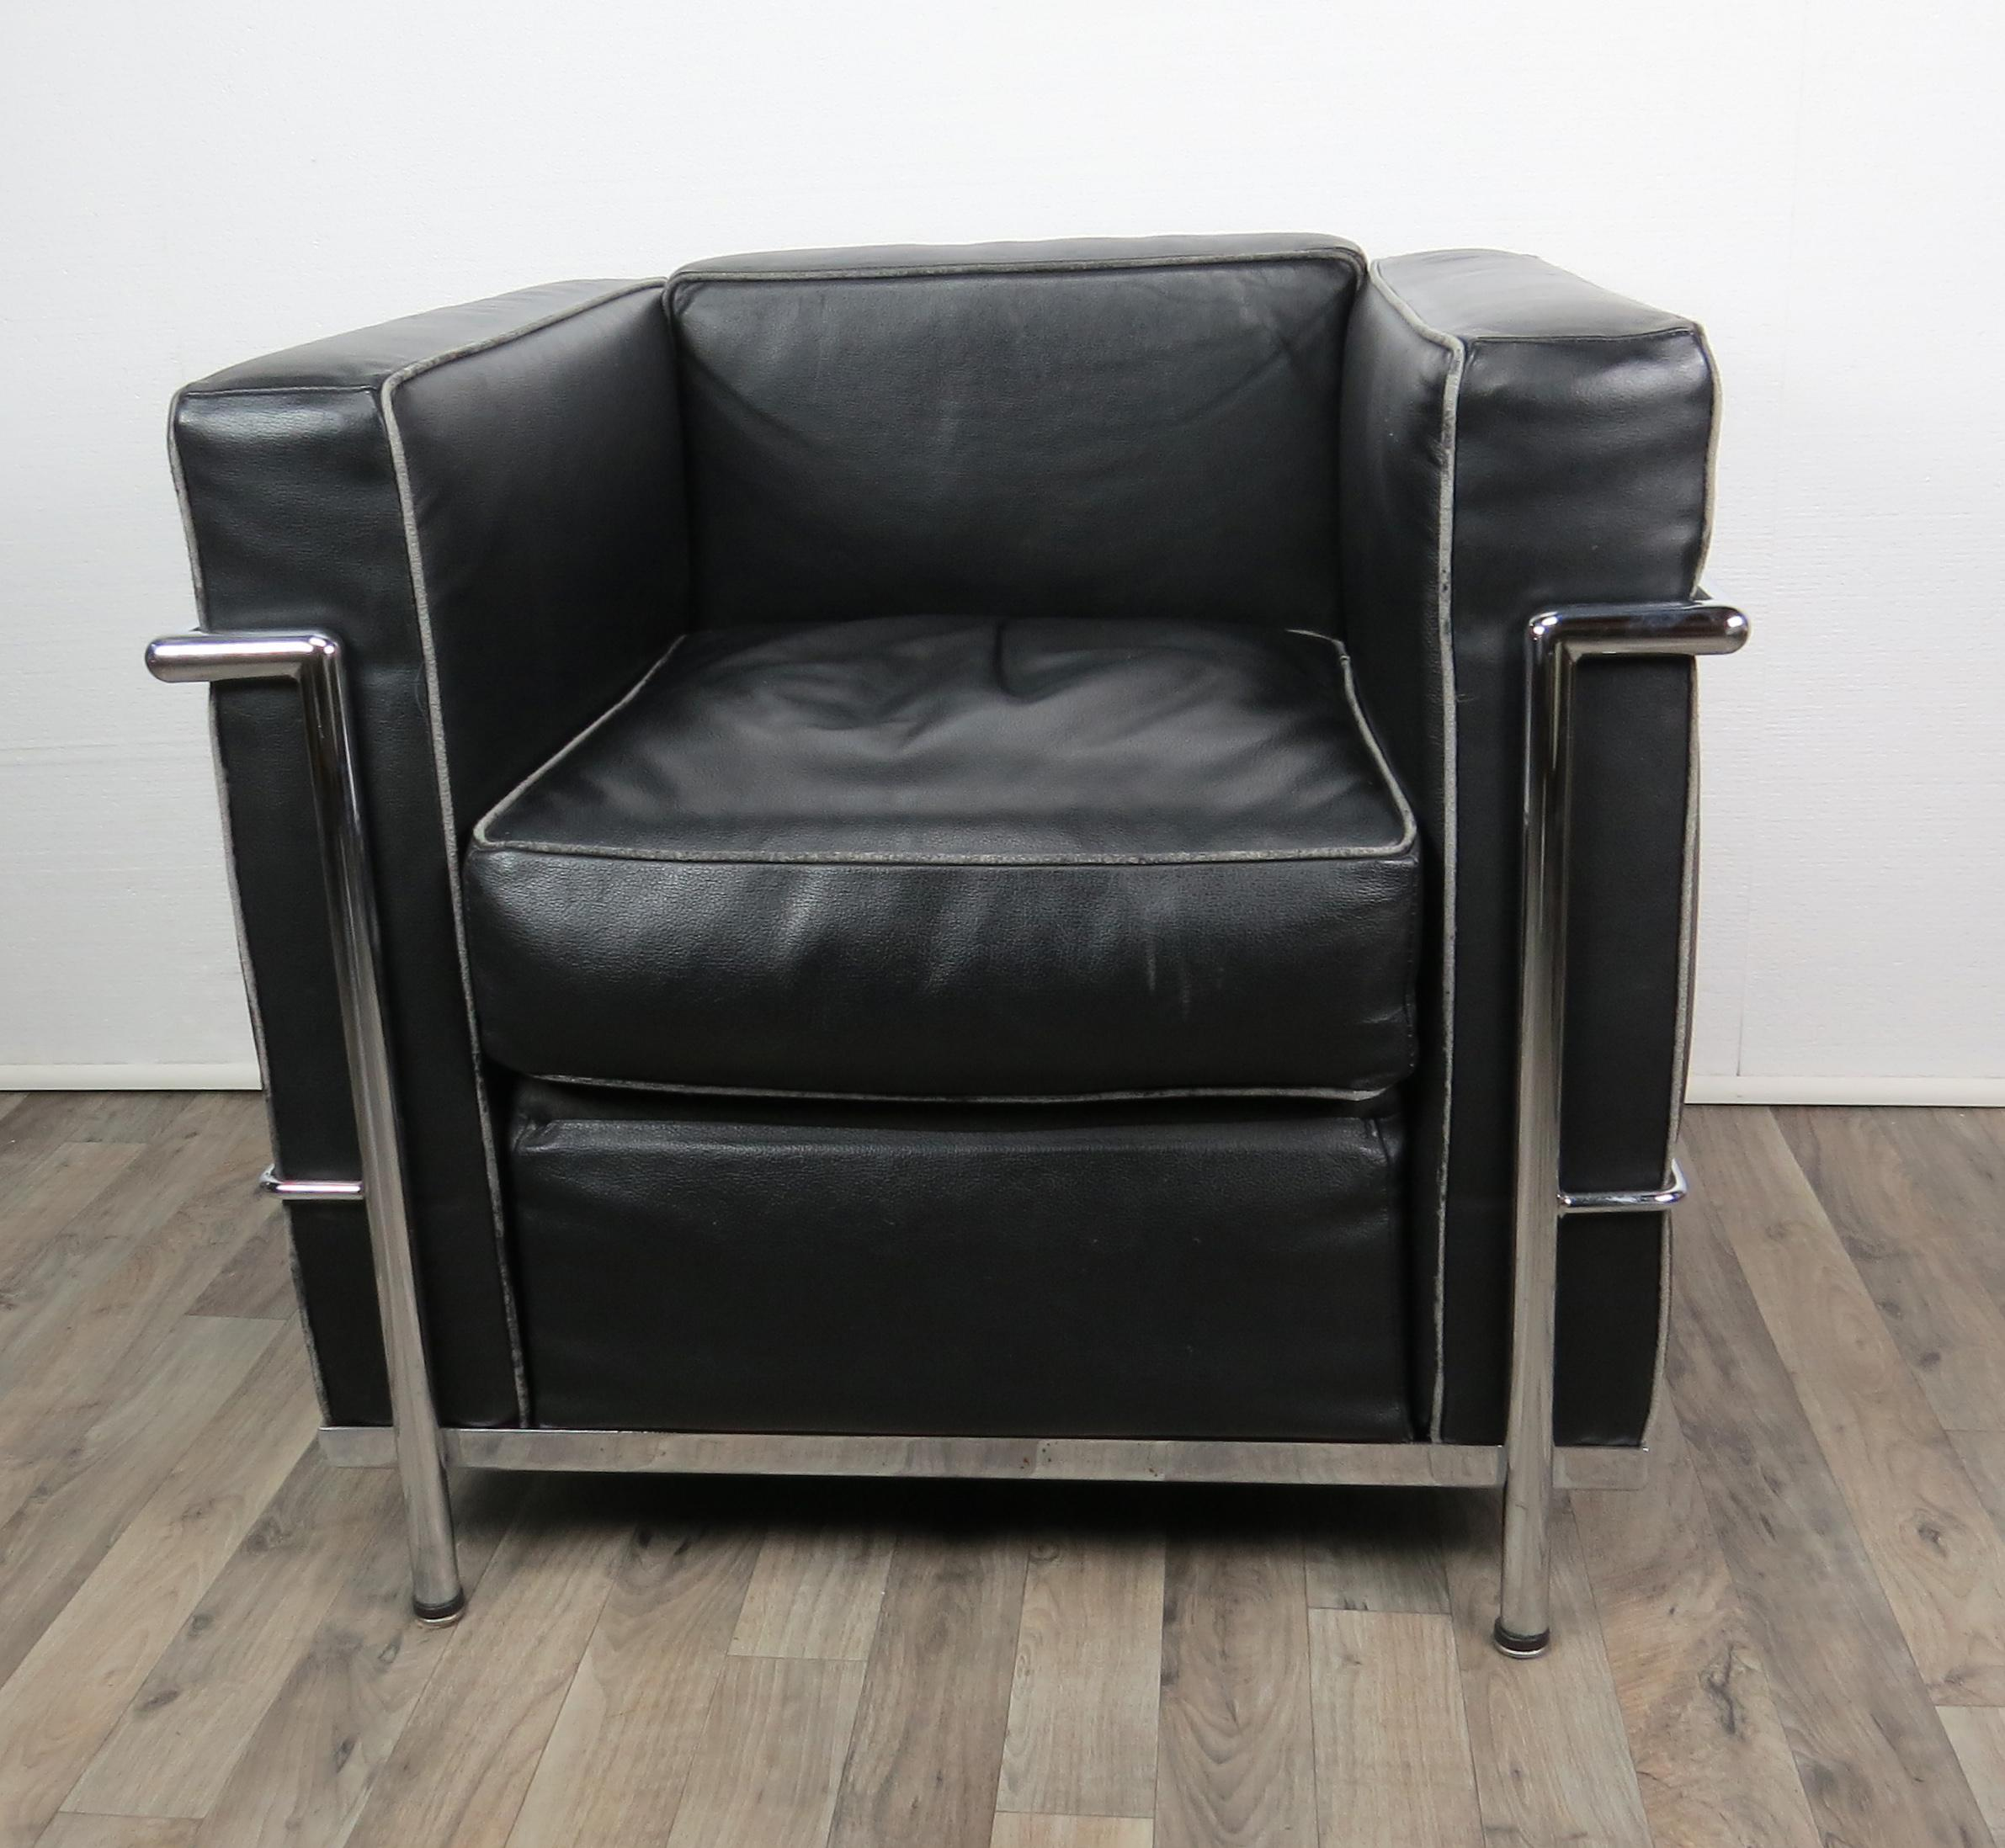 Superb Black Leather Le Corbusier LC2 Club Chair By Cassina Italy. Polished  Chrome Frame With